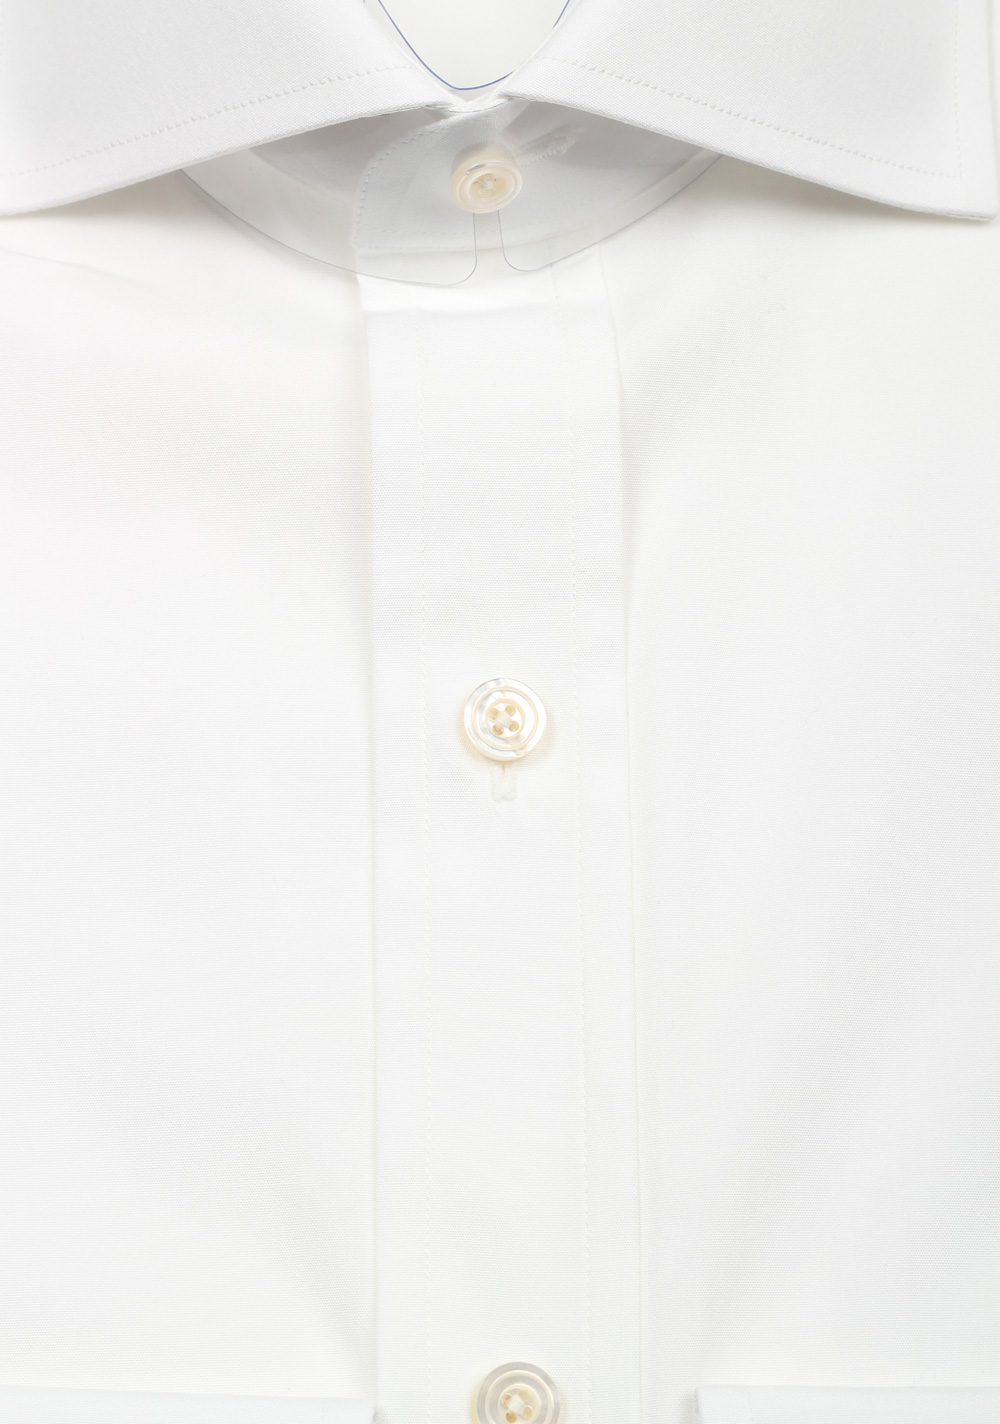 TOM FORD Solid White Dress Spread Shirt Barrel Cuffs Size 38 / 15 U.S. Slim Fit | Costume Limité